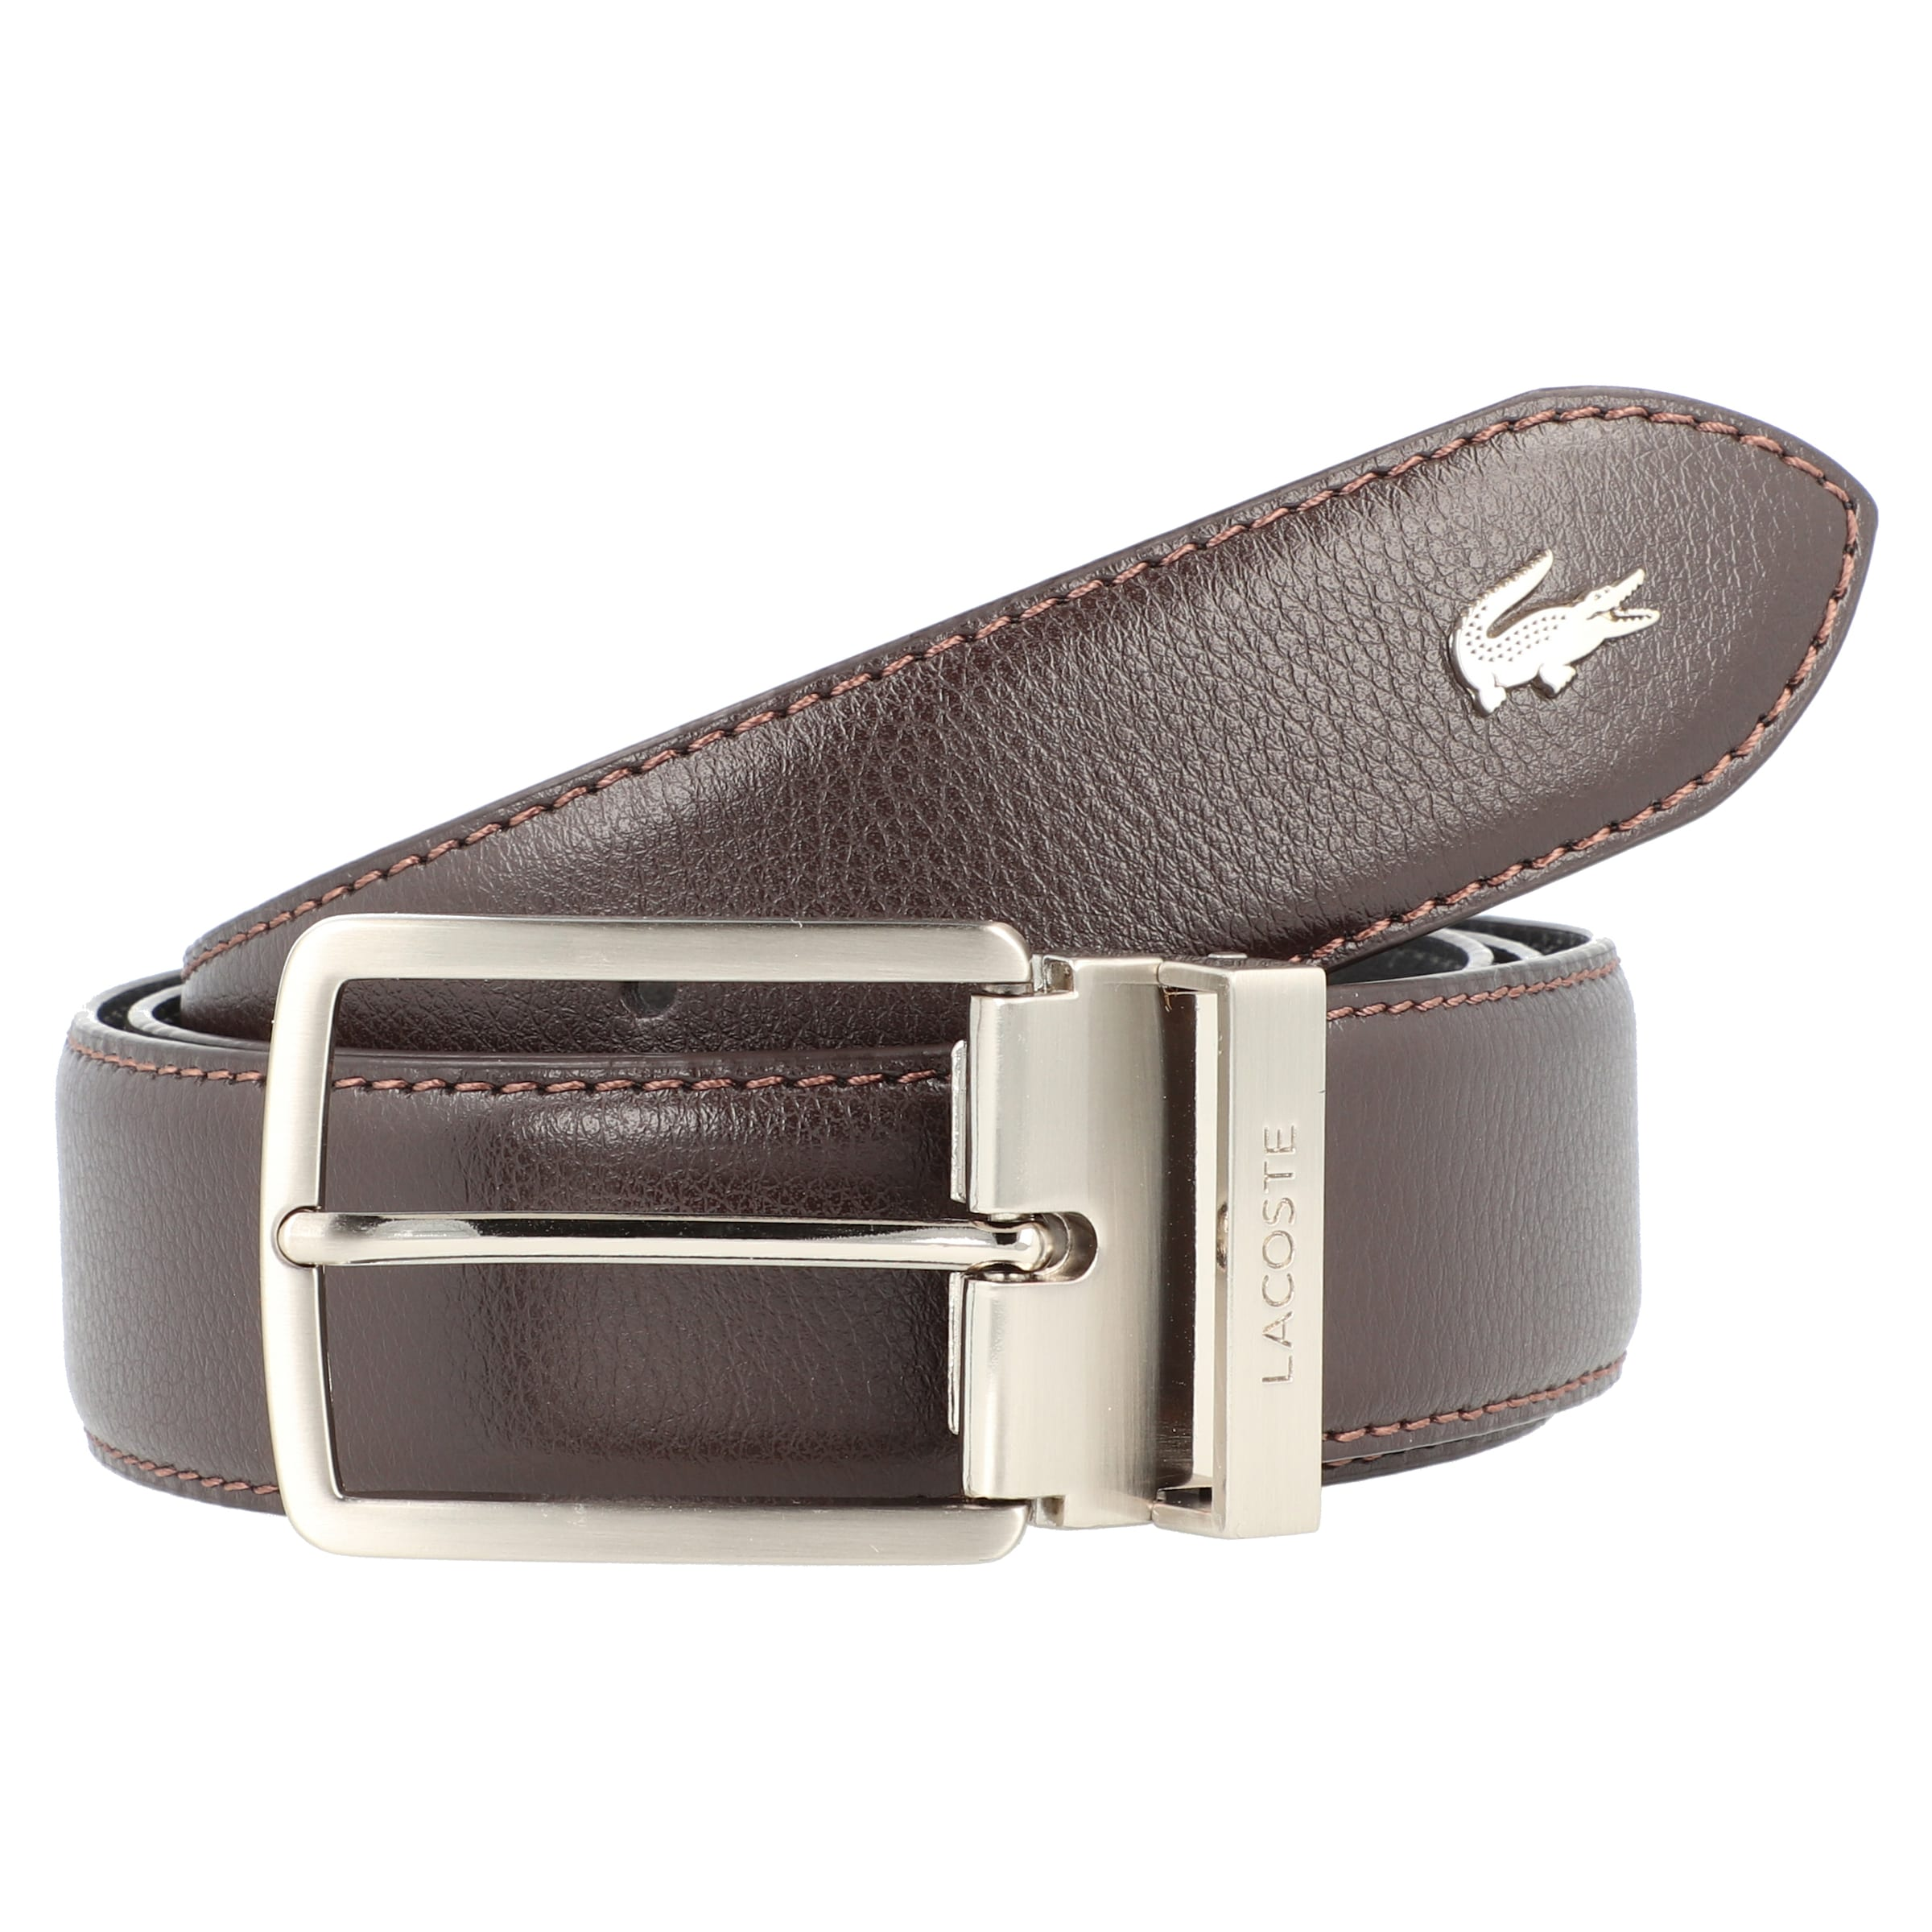 Ledergürtel Elegance' Lacoste Braun In 'men's 3Lq4Rjc5AS